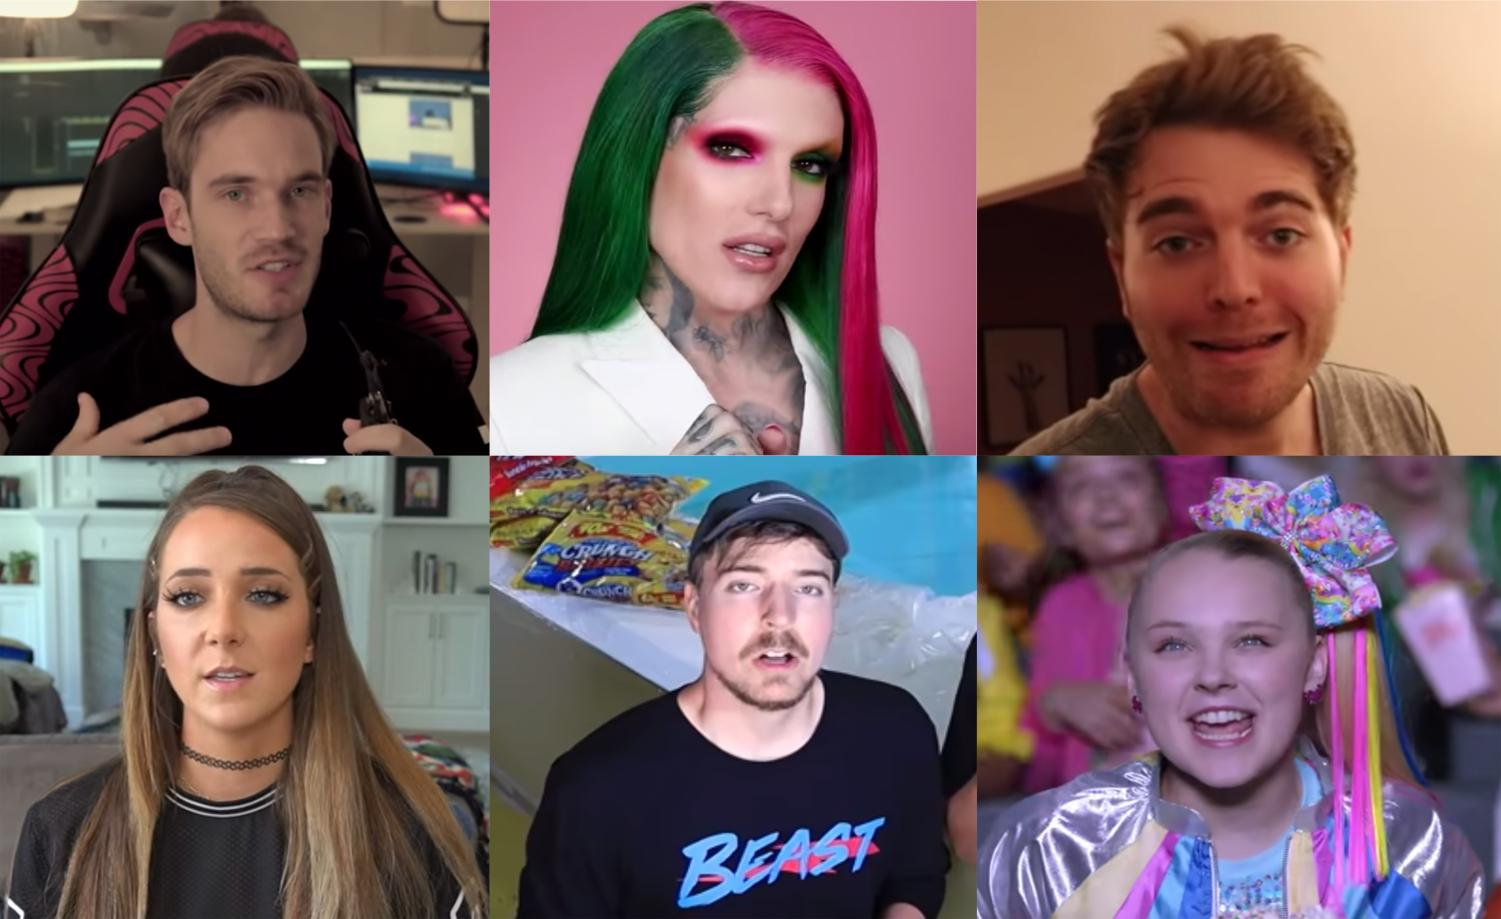 The potential darkness in idolizing Youtubers